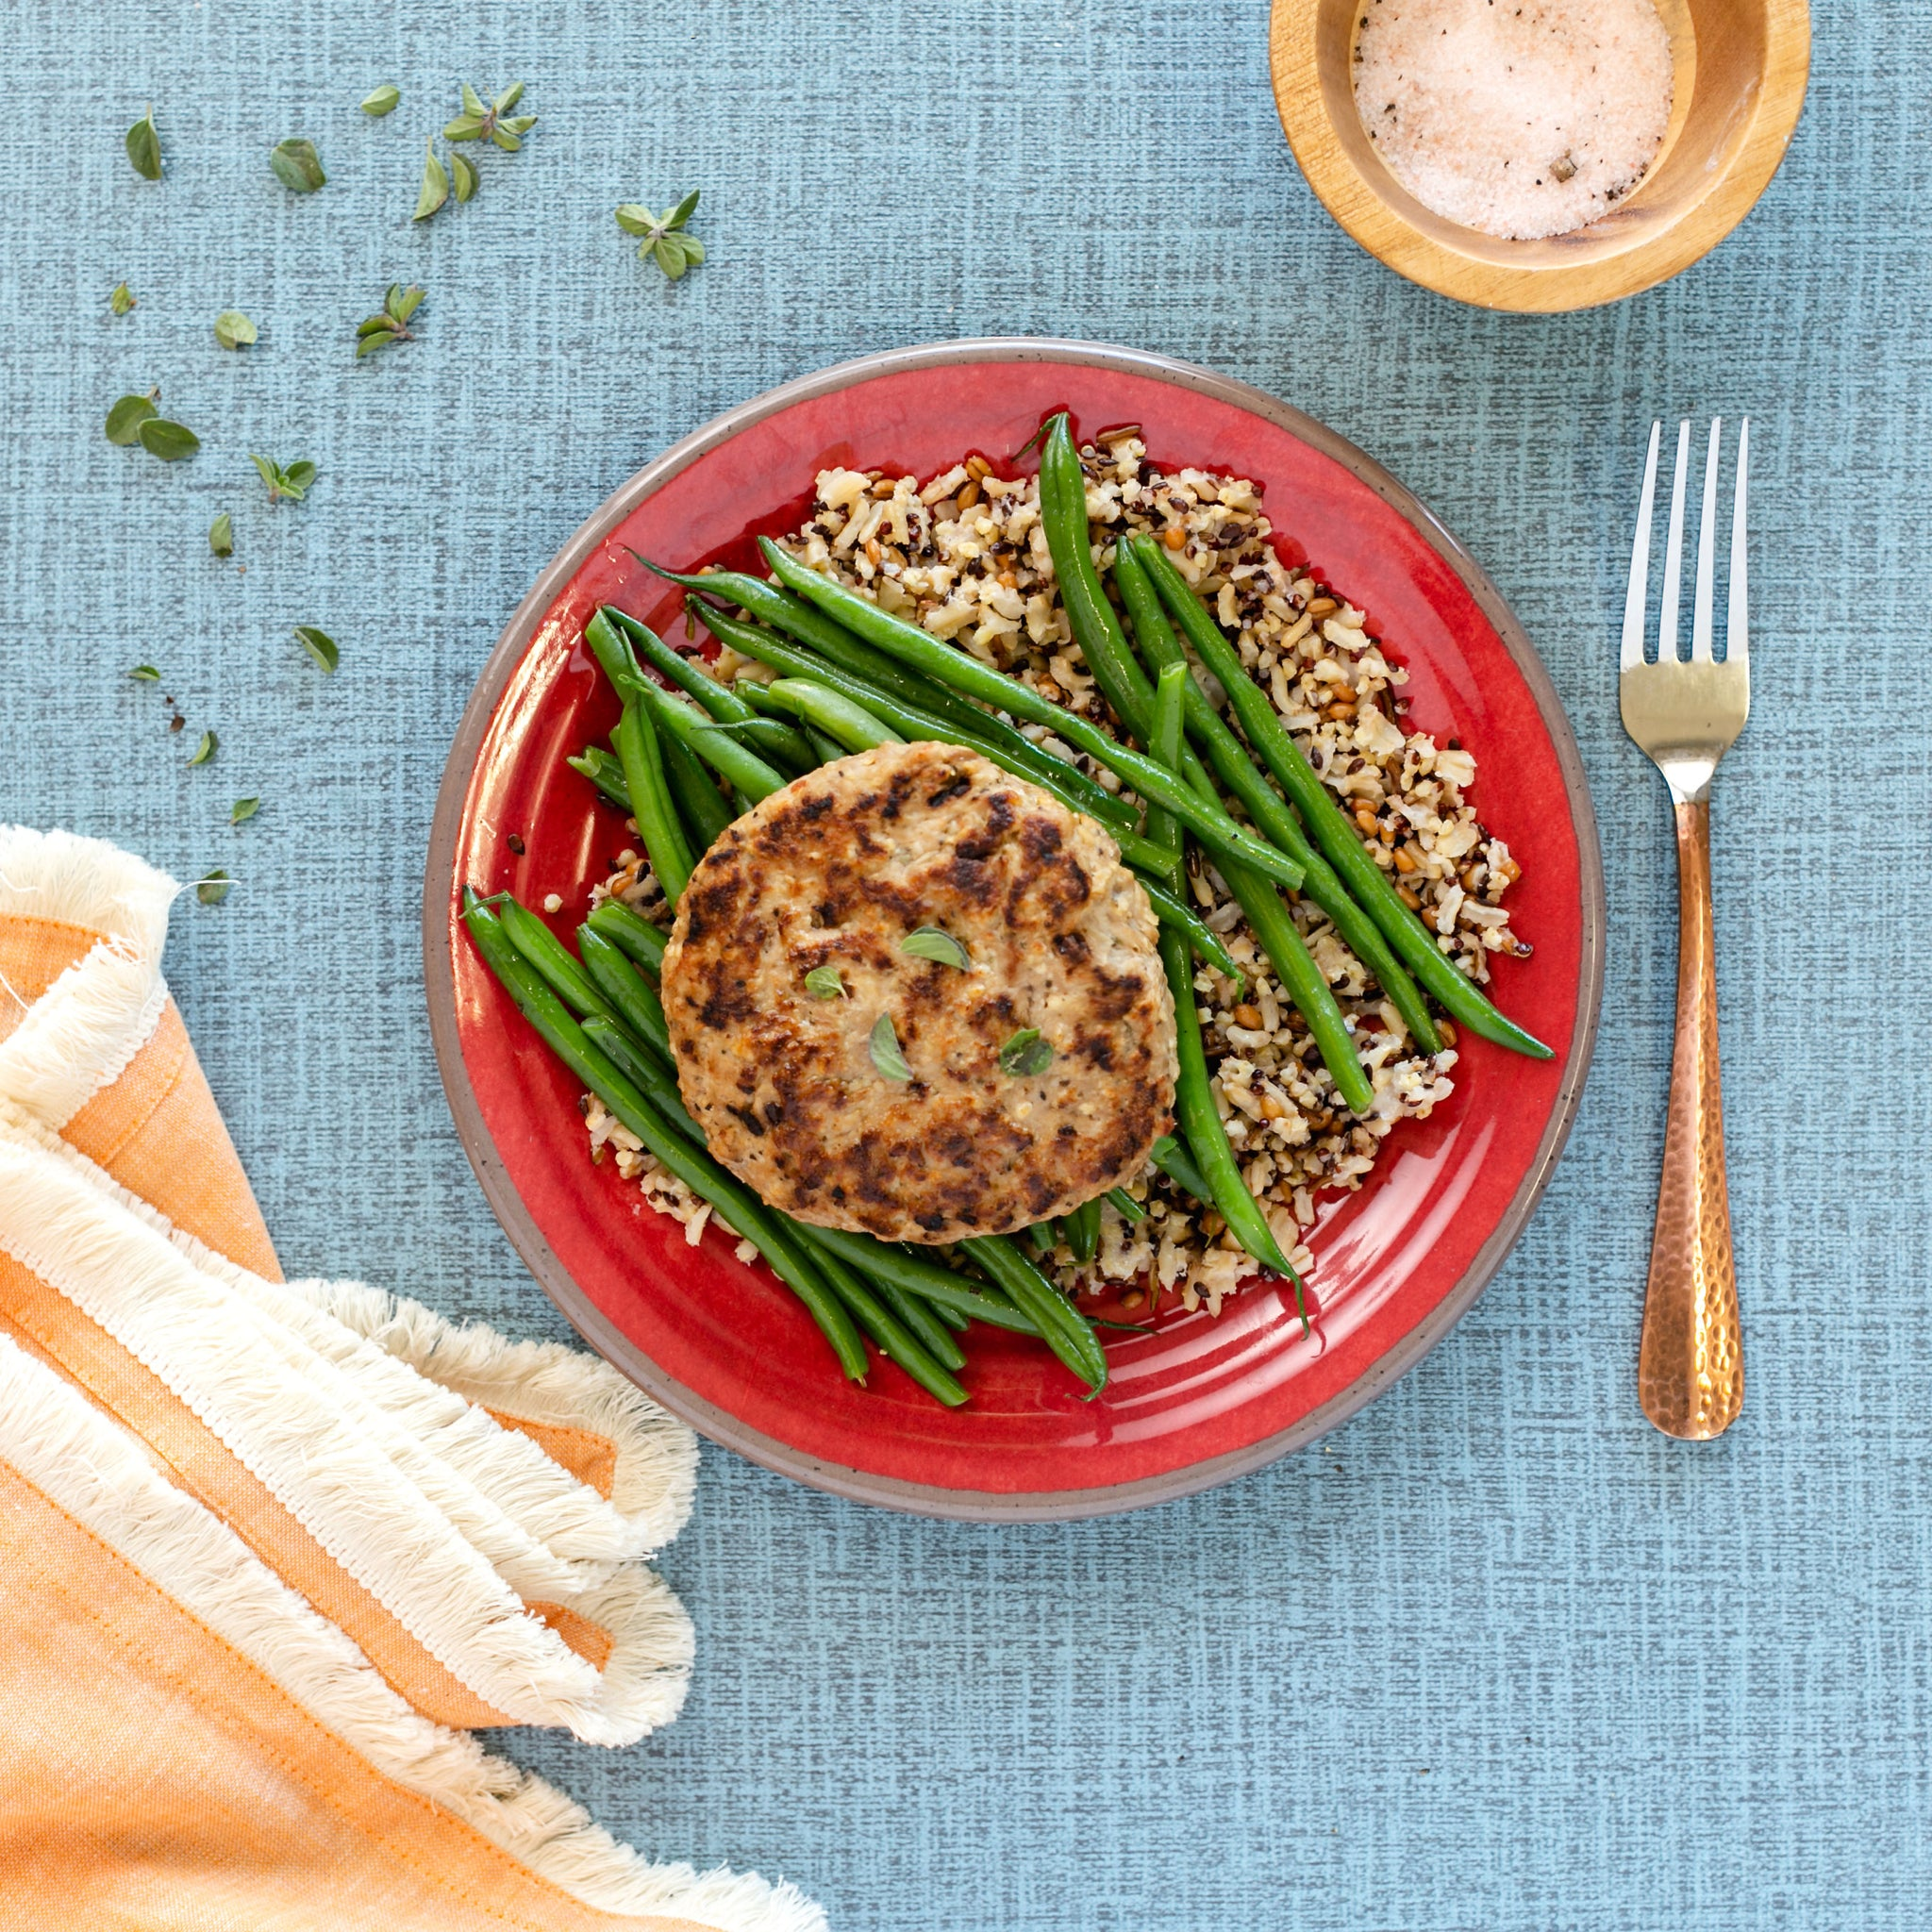 Turkey Burger, Wild Rice, Green Beans